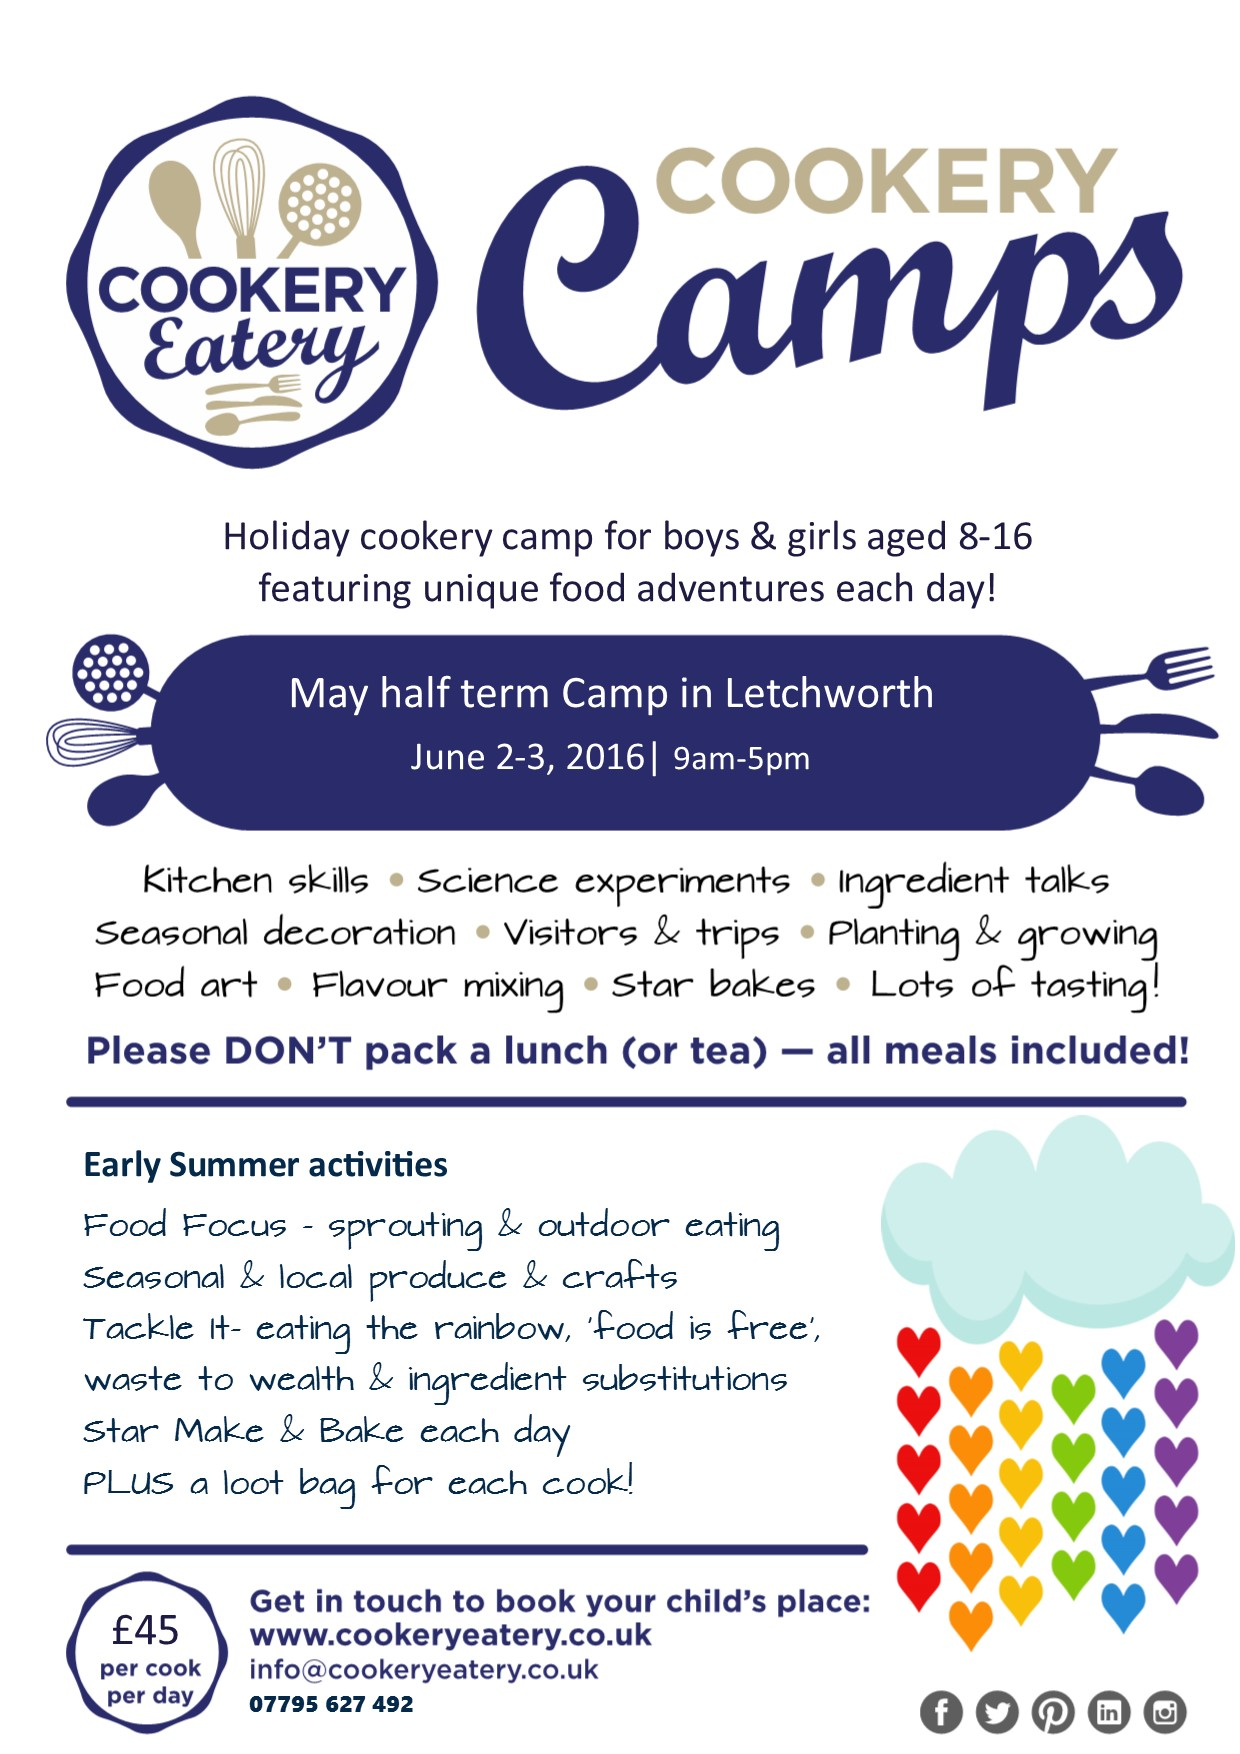 Cookery Camp.May half term 2016.Letchworth.FLYER.jpg